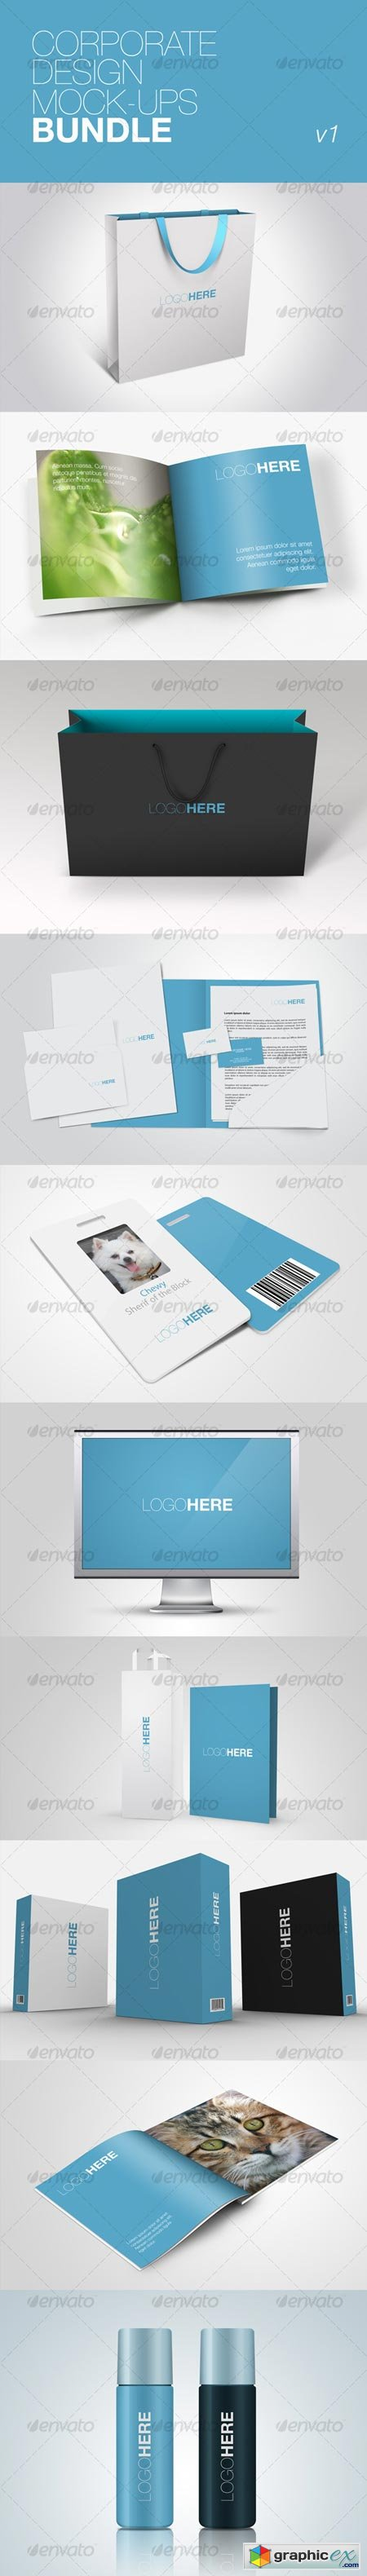 Corporate Design Mock-ups Bundle v1 72429